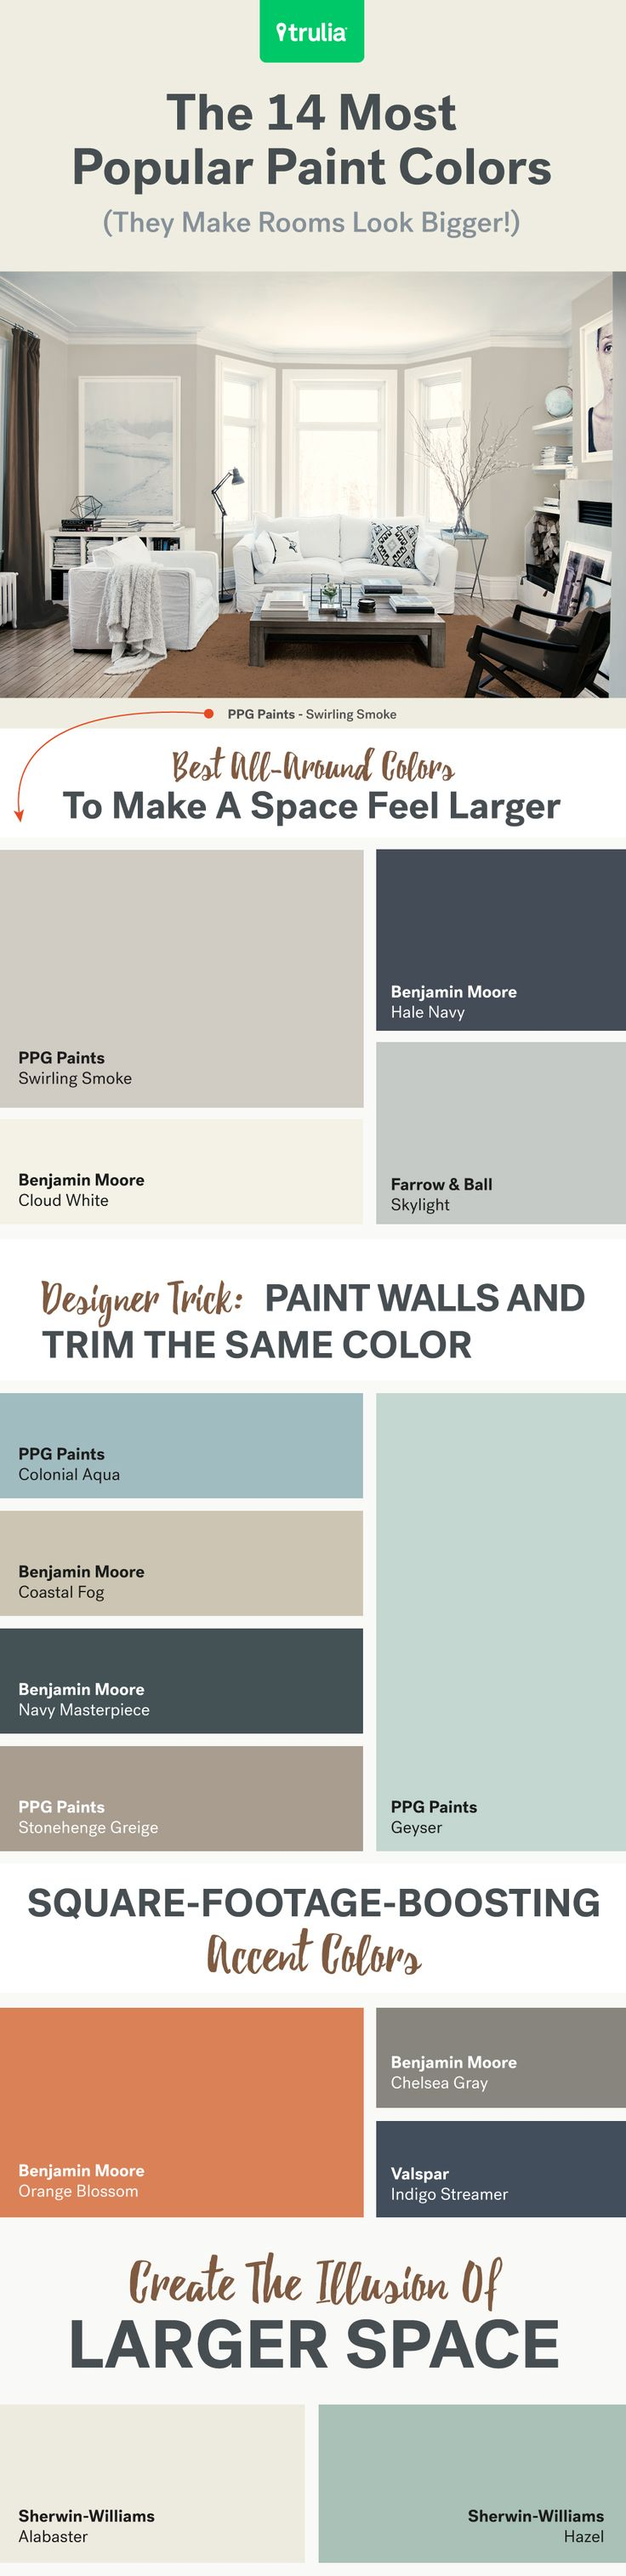 14 Popular Paint Colors For Small Rooms U2013 Life At Home U2013 Trulia Blog Part 32